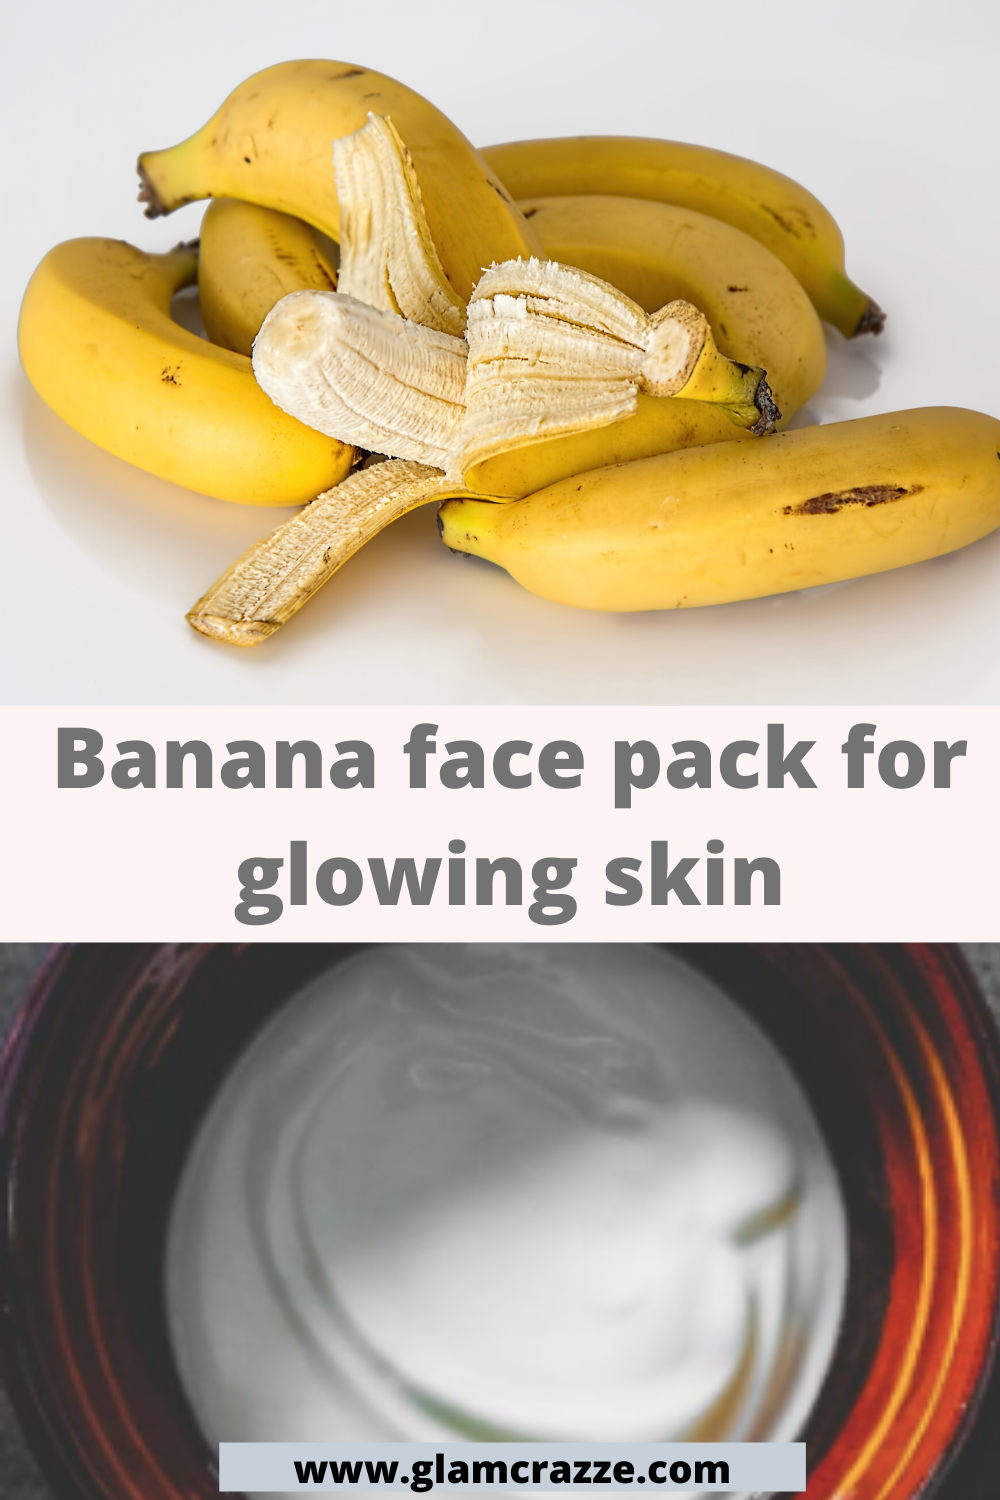 Banana and yogurt face pack for glowing skin